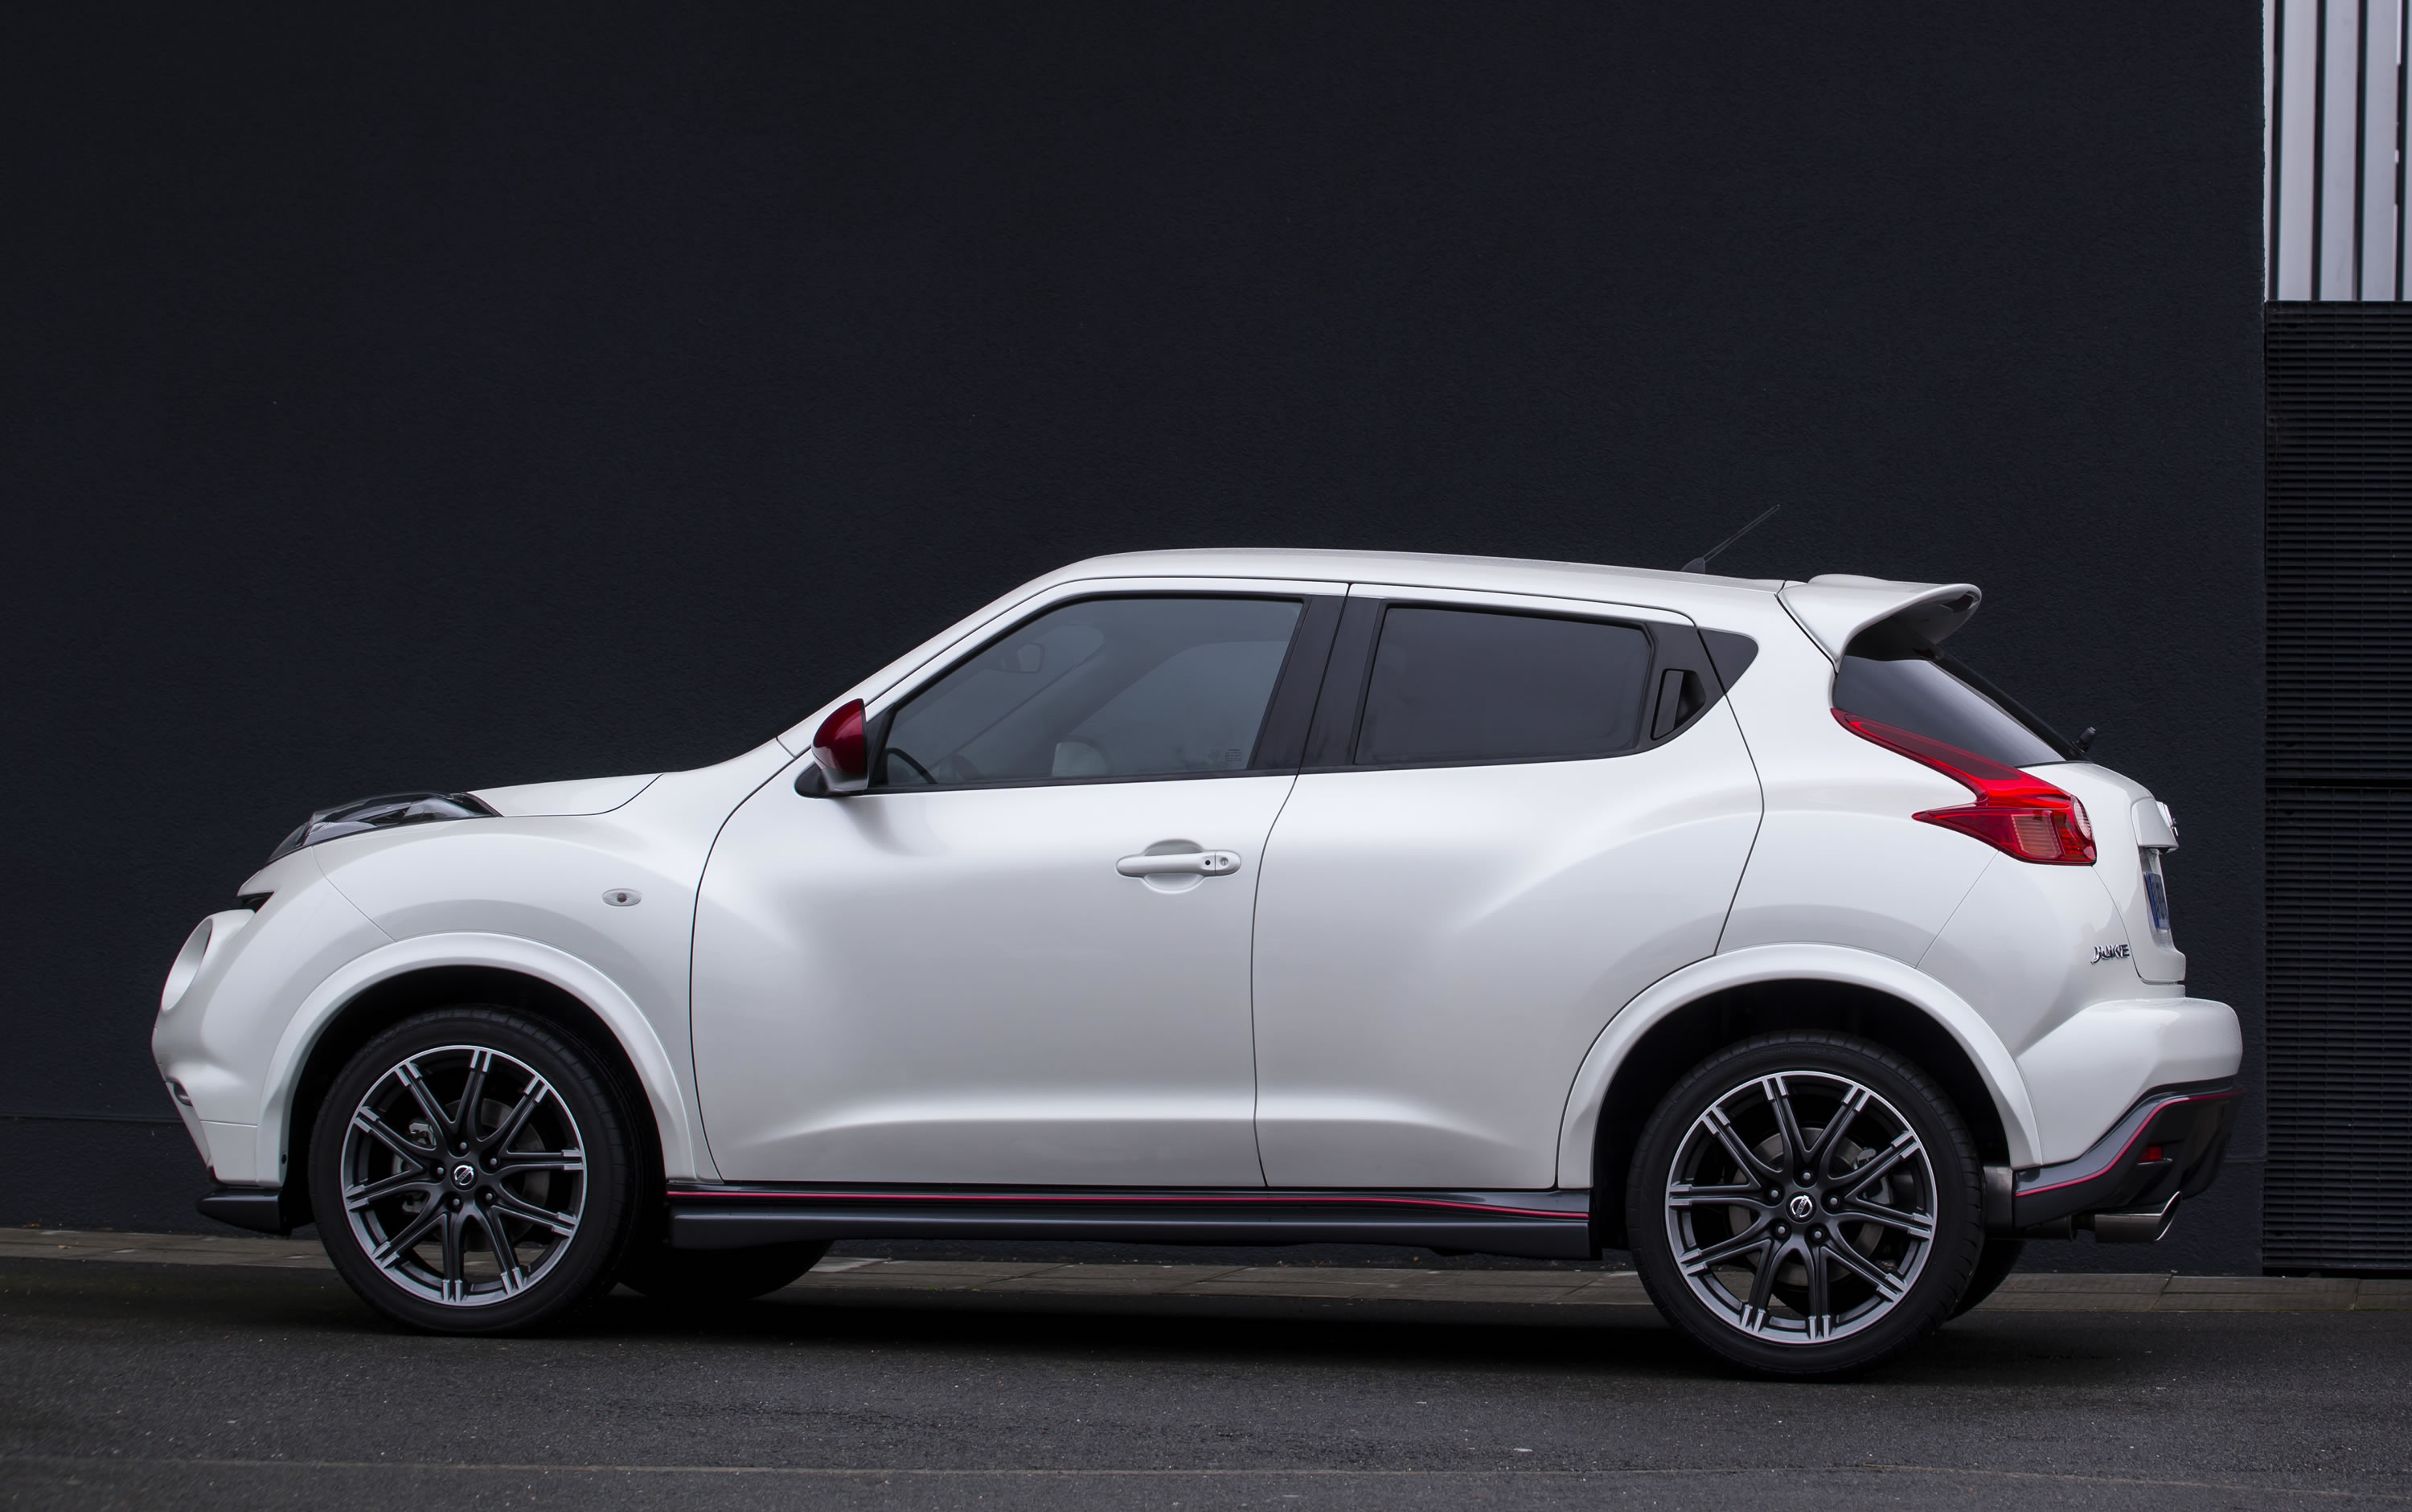 2014 nissan juke nismo photos specs and review rs. Black Bedroom Furniture Sets. Home Design Ideas